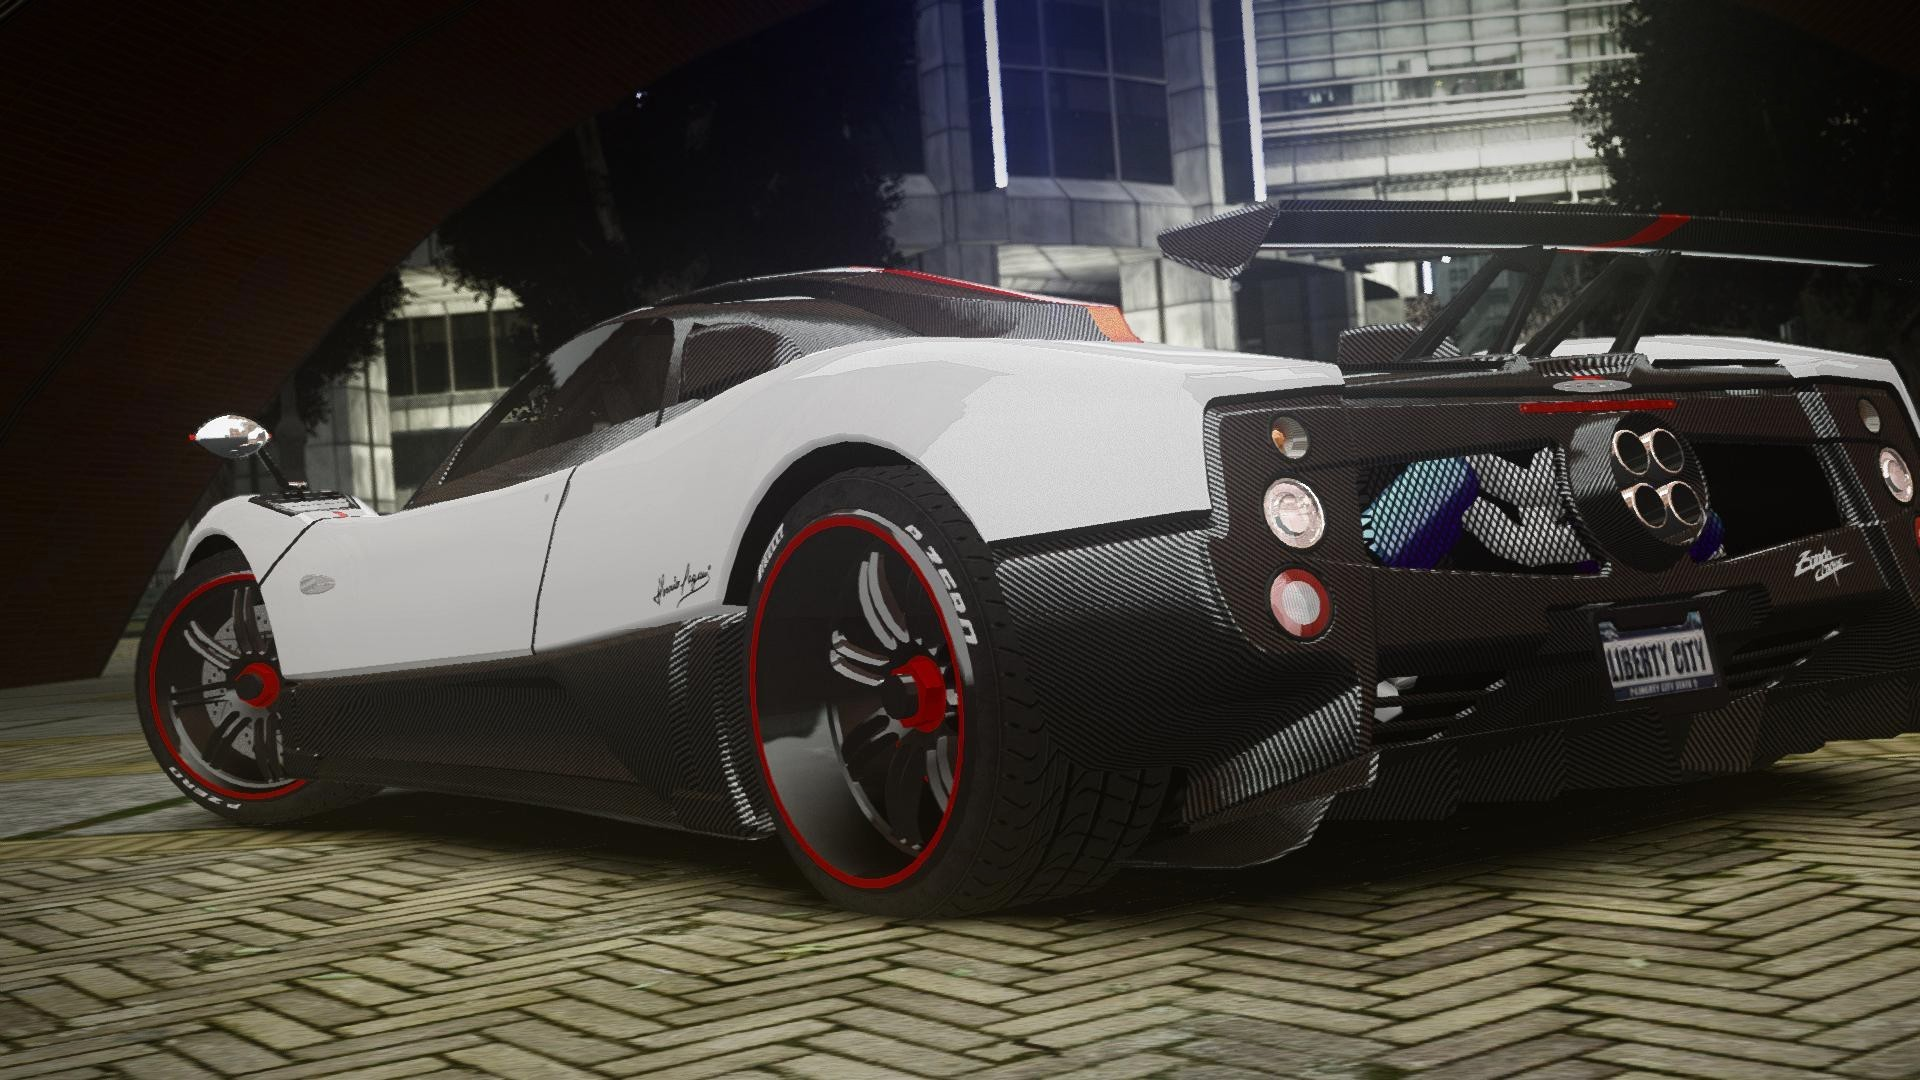 Res: 1920x1080, Cars Sports Cars Games Grand Theft Auto Iv Wallpaper X Wallpaperup